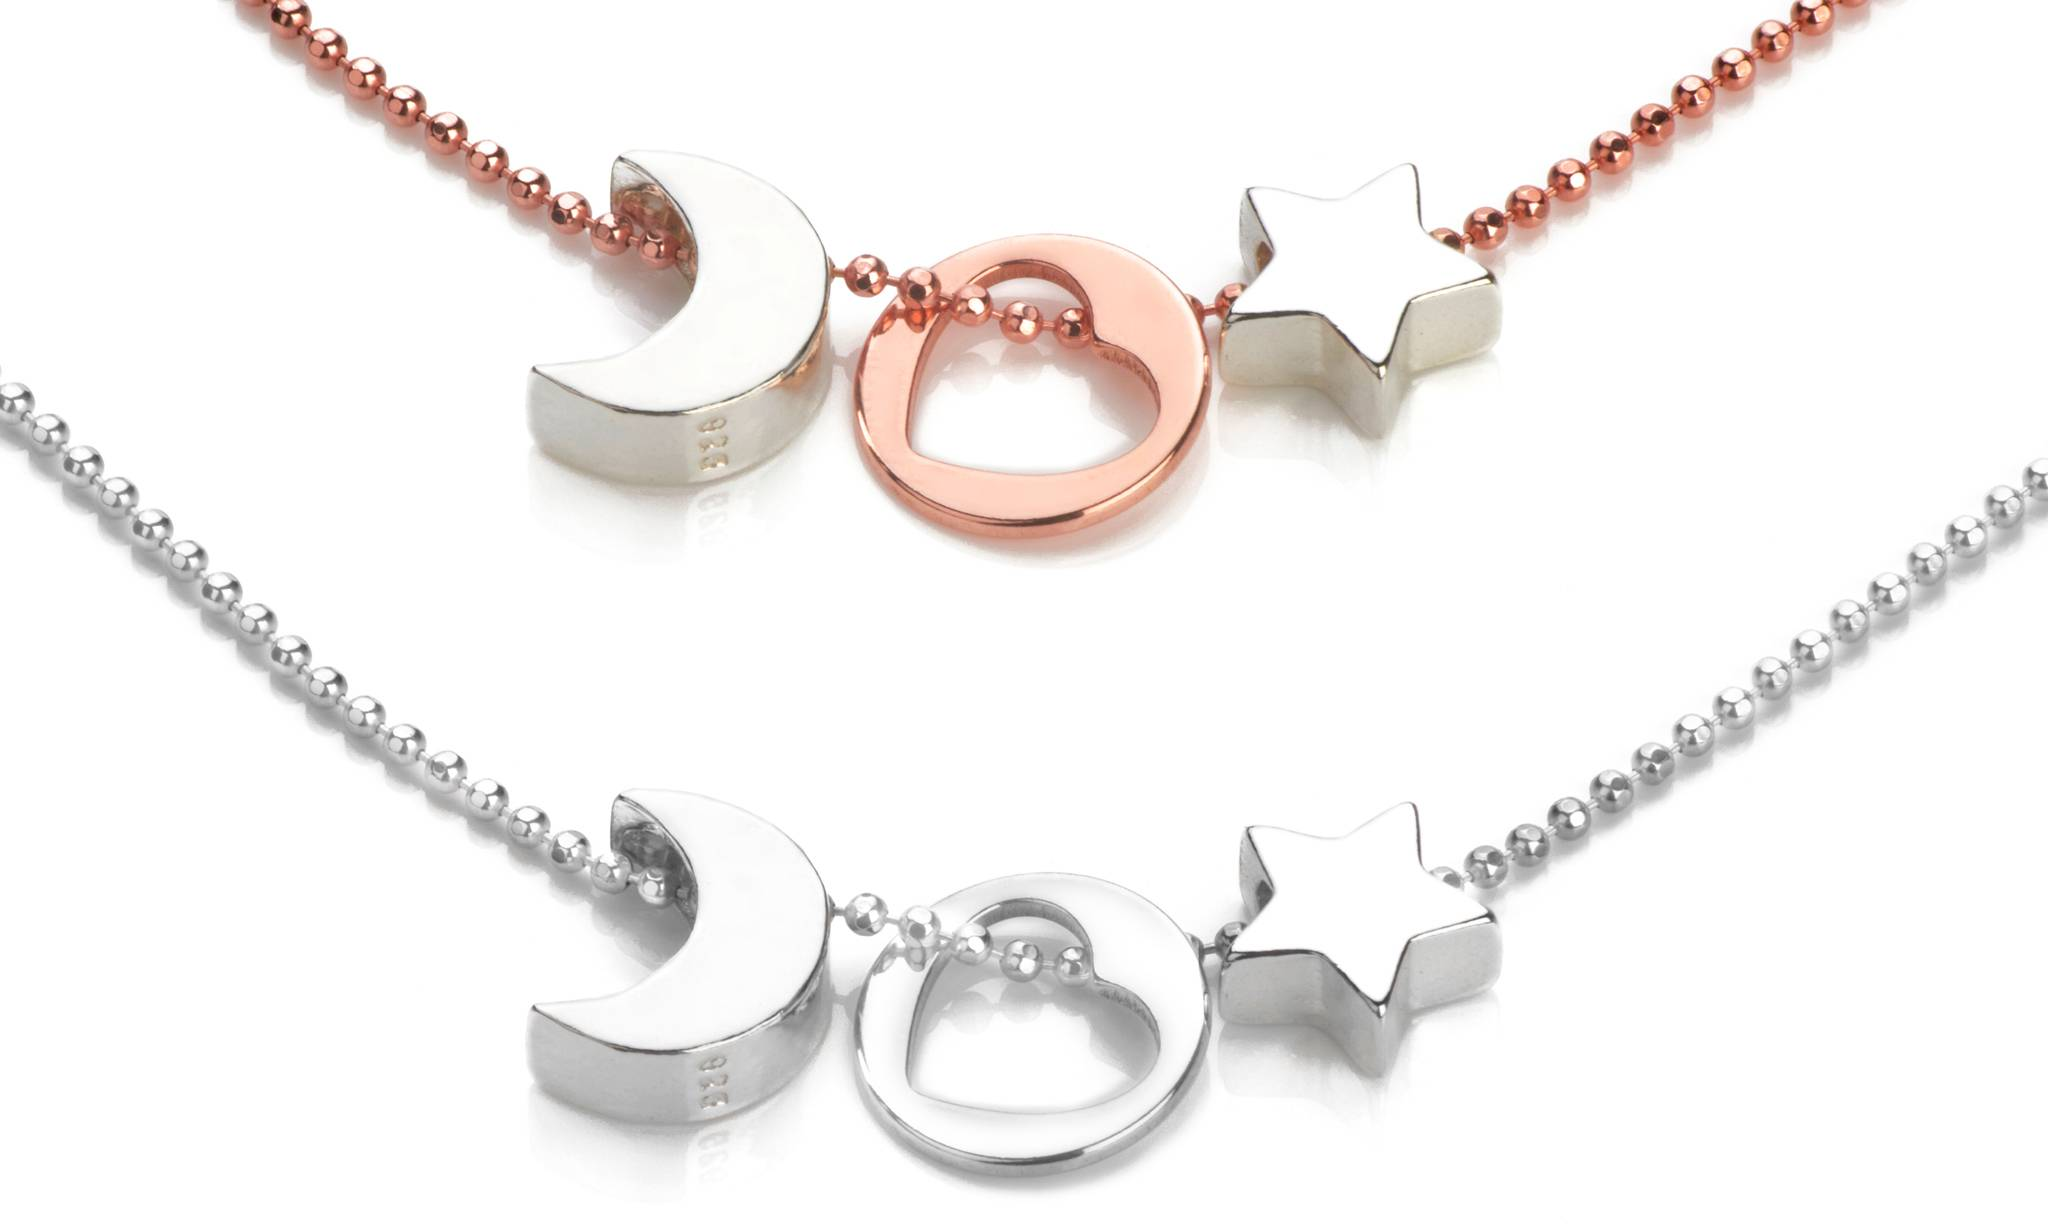 Ah! Jewellery Two-Tone Sterling Silver Heart-Moon-Star Pendant Necklace: Silver and Rose Gold, Two